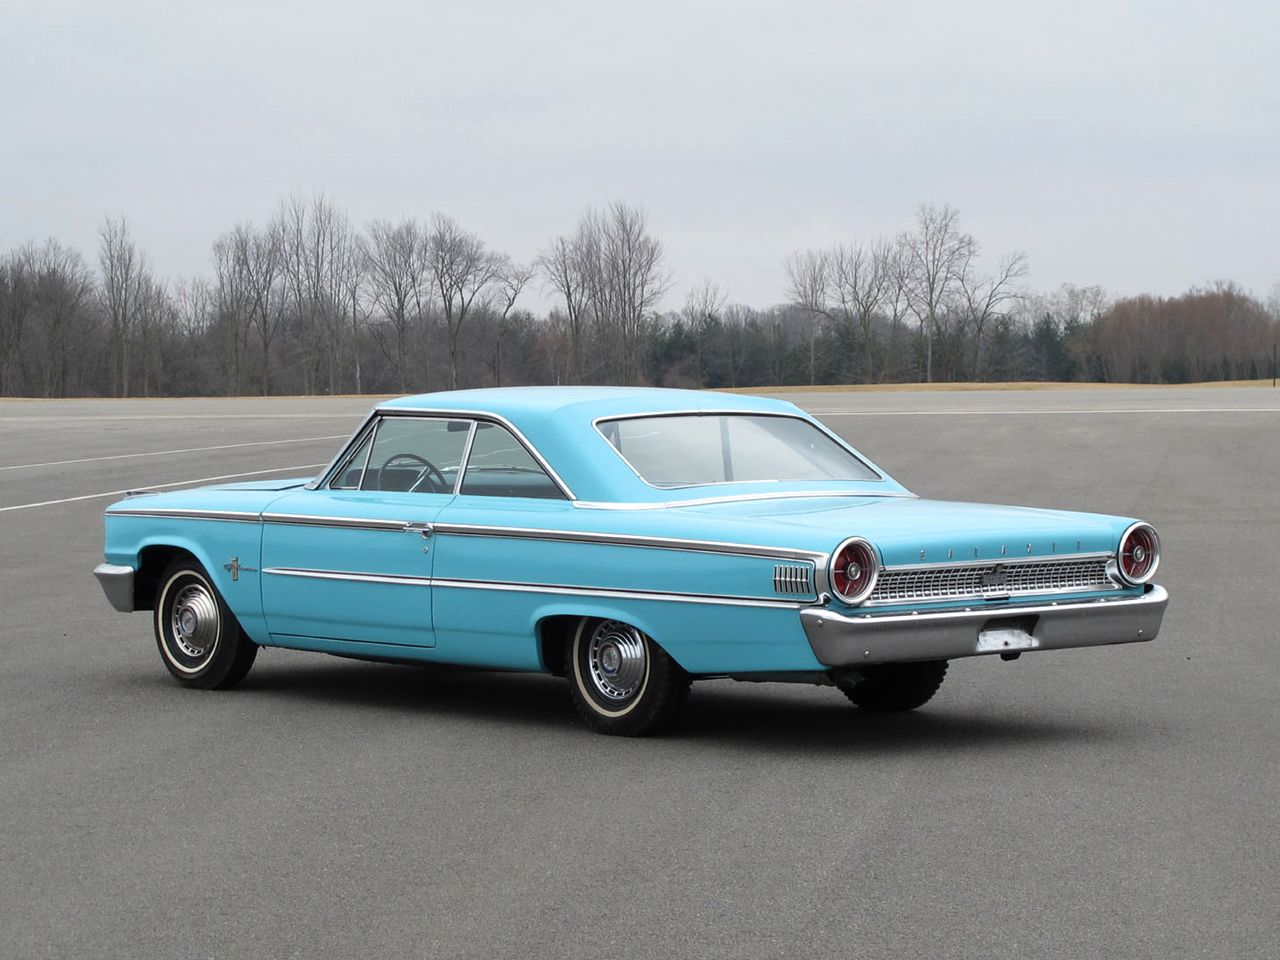 Ford Galaxie 500 Ford Galaxie 500 Fastback Hardtop 1963 Ford